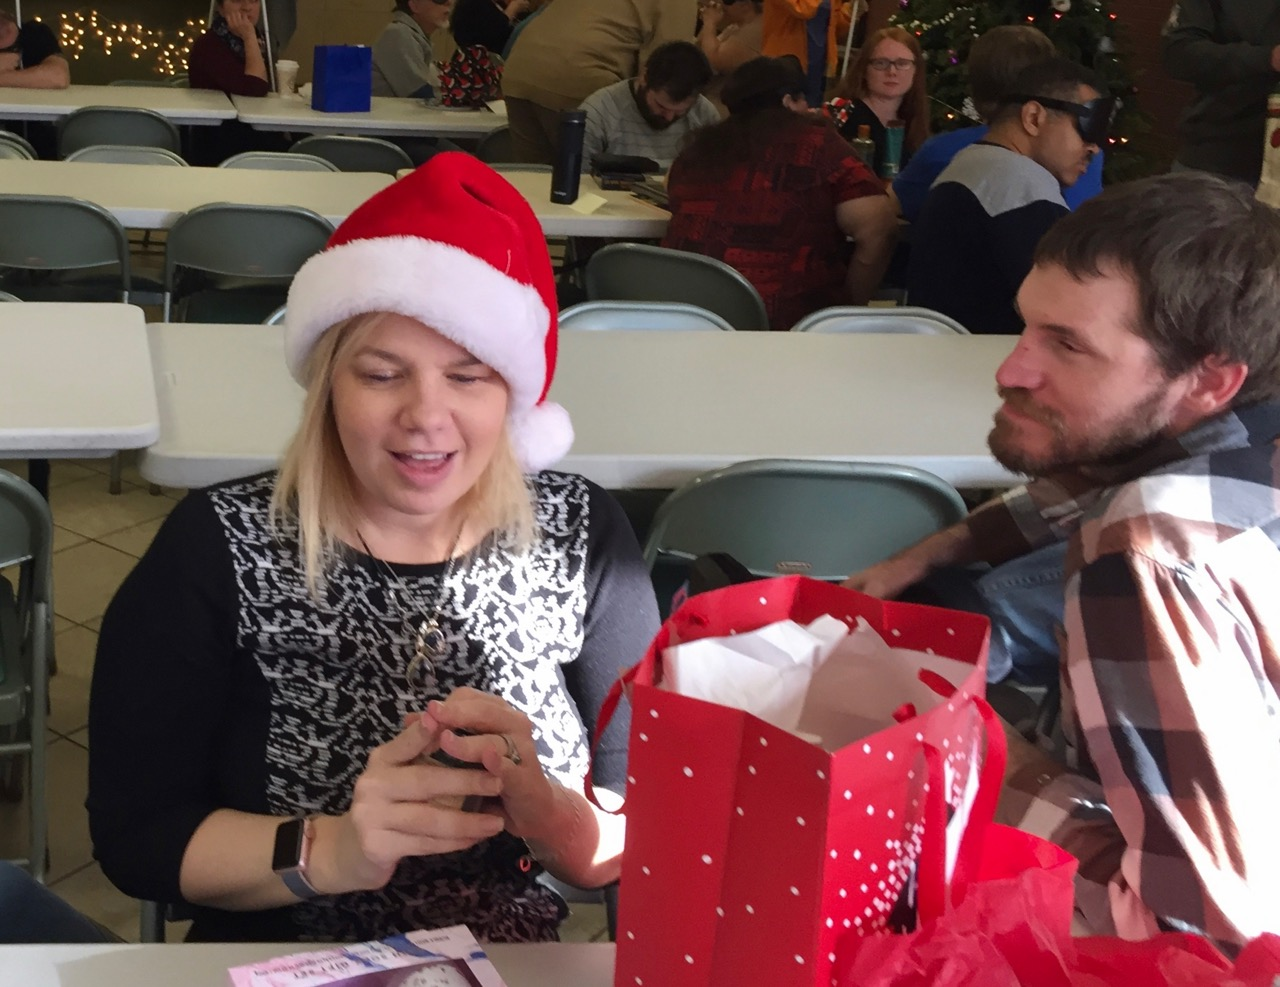 Maureen wearing her Santa hat opens her gift while David looks on